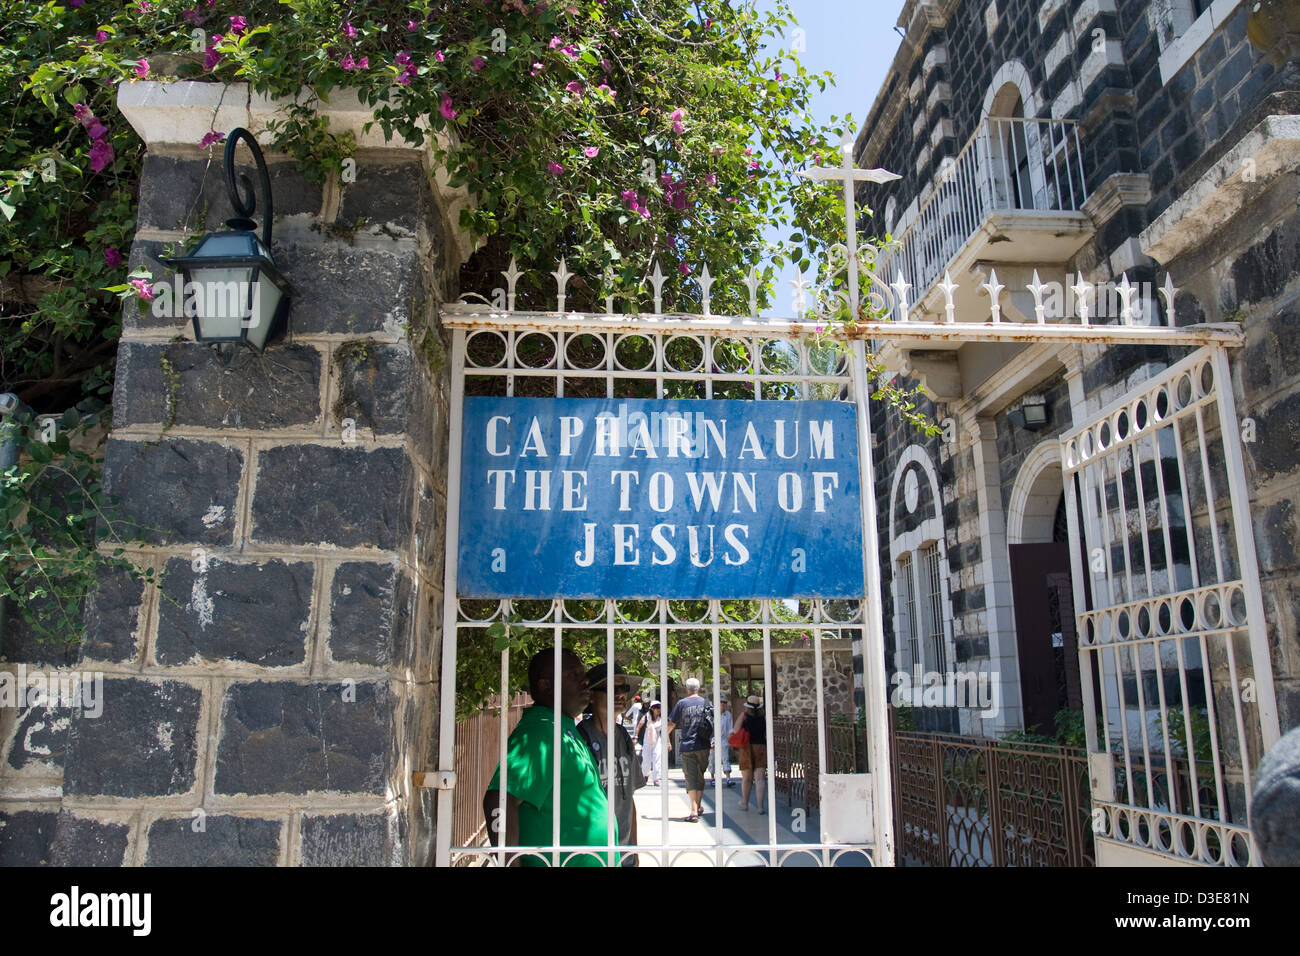 The ancient town of Capernaum played a very significant role in Jesus Christ's ministry. Stock Photo